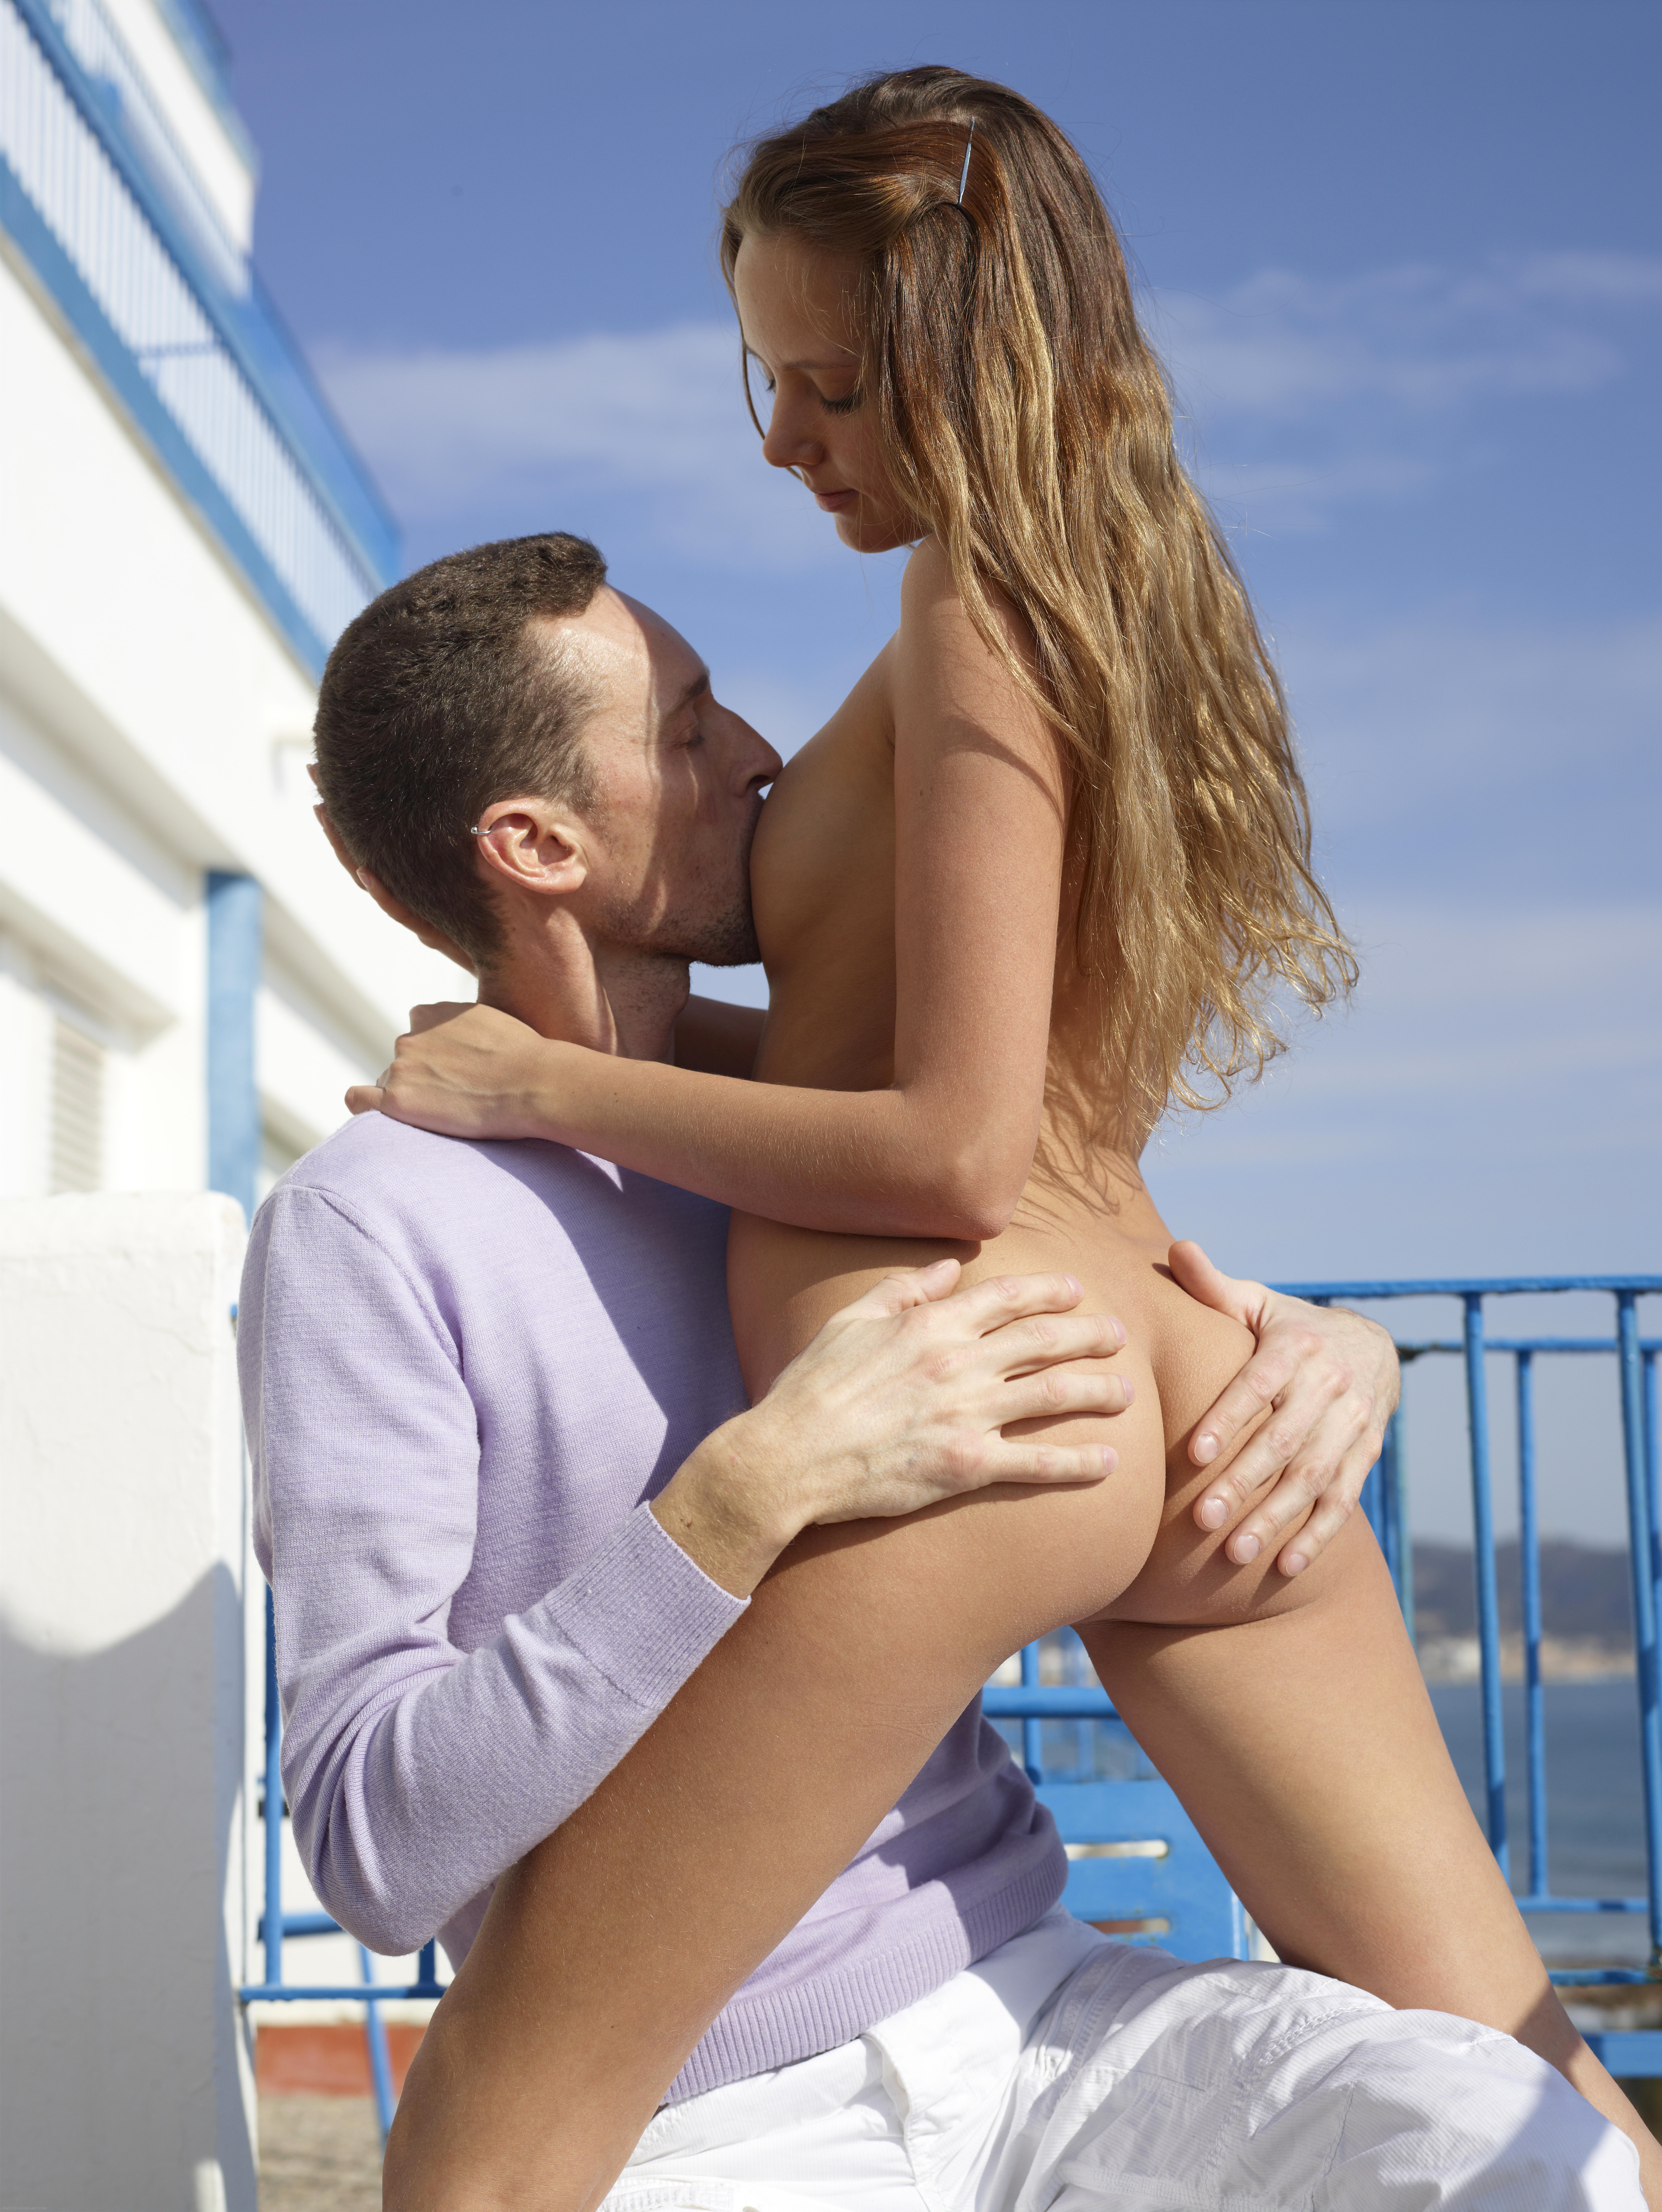 Senior dating websites in tuvalu 9